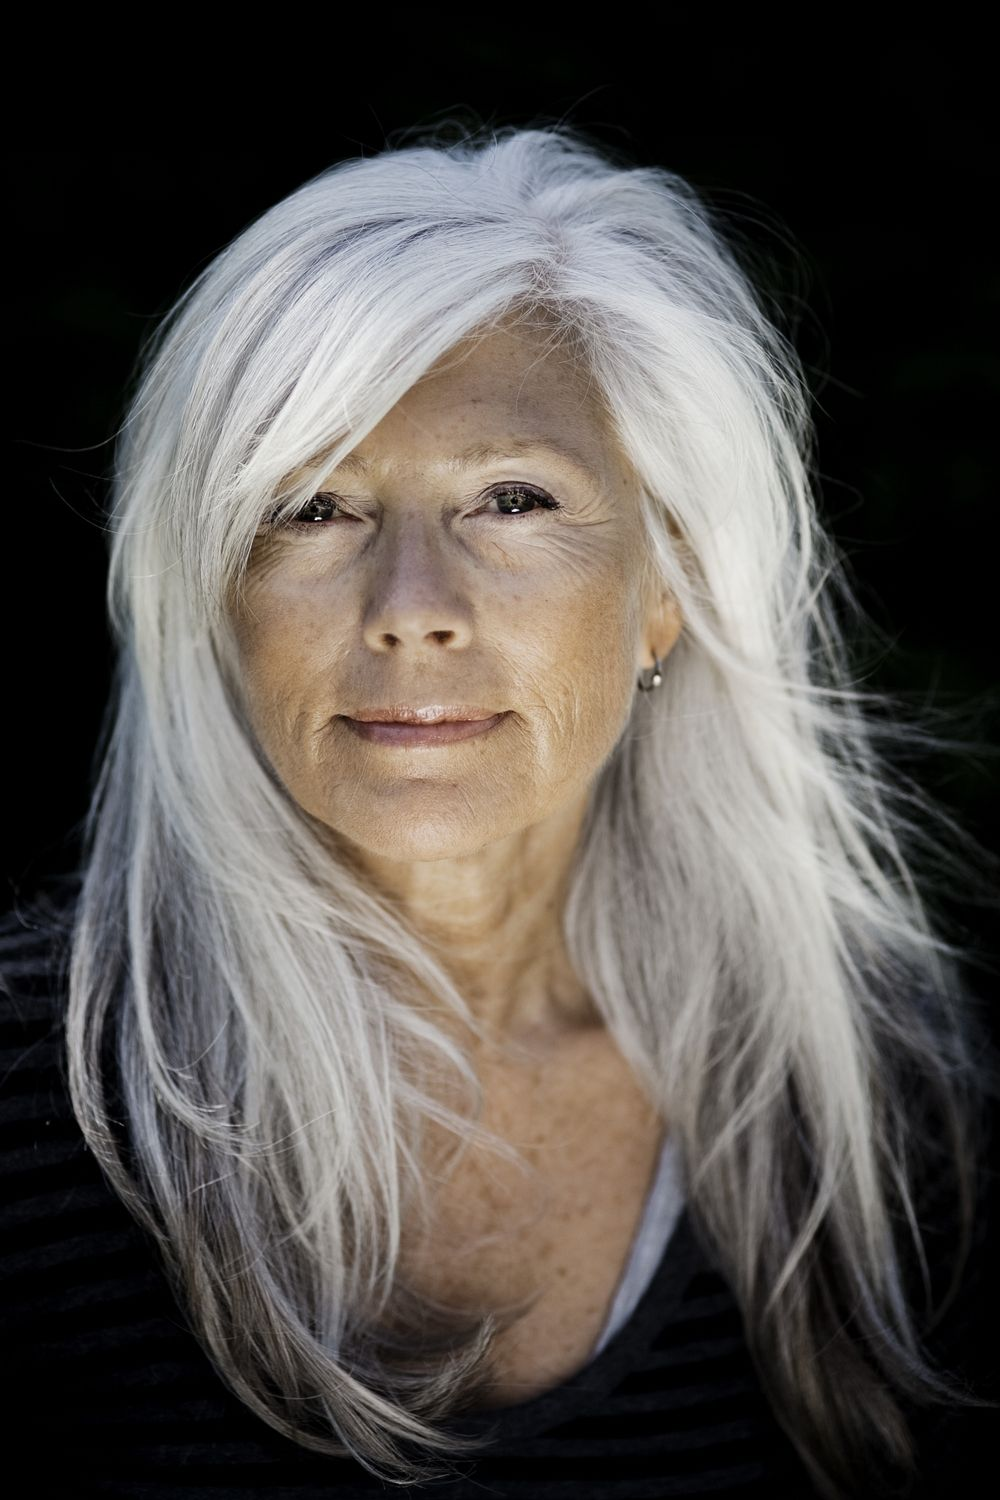 Wanna Look Like Her When I Become Old Long Hair Styles Hair Styles Beautiful Hair